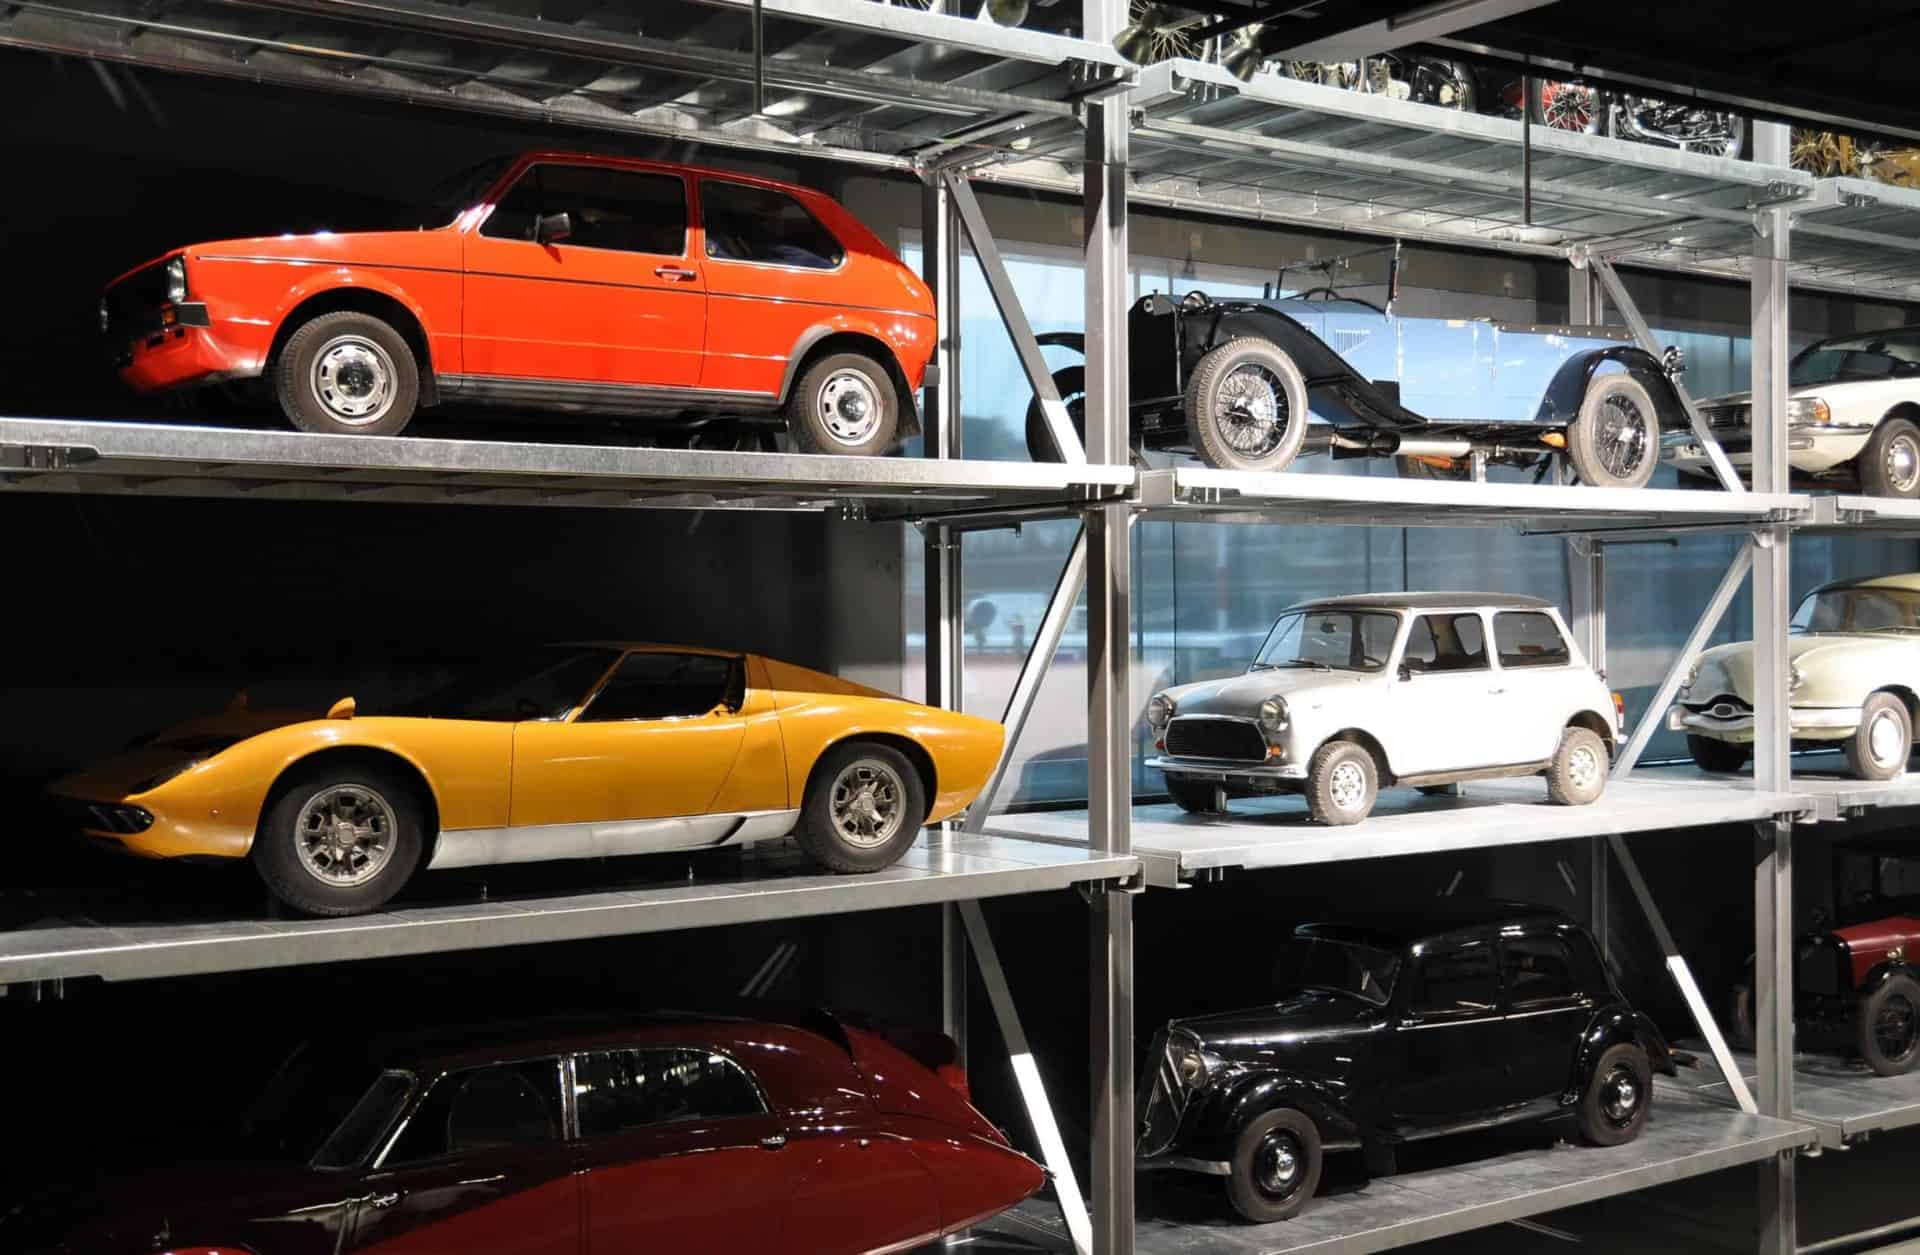 Visit the Swiss Museum of Transport and Communication